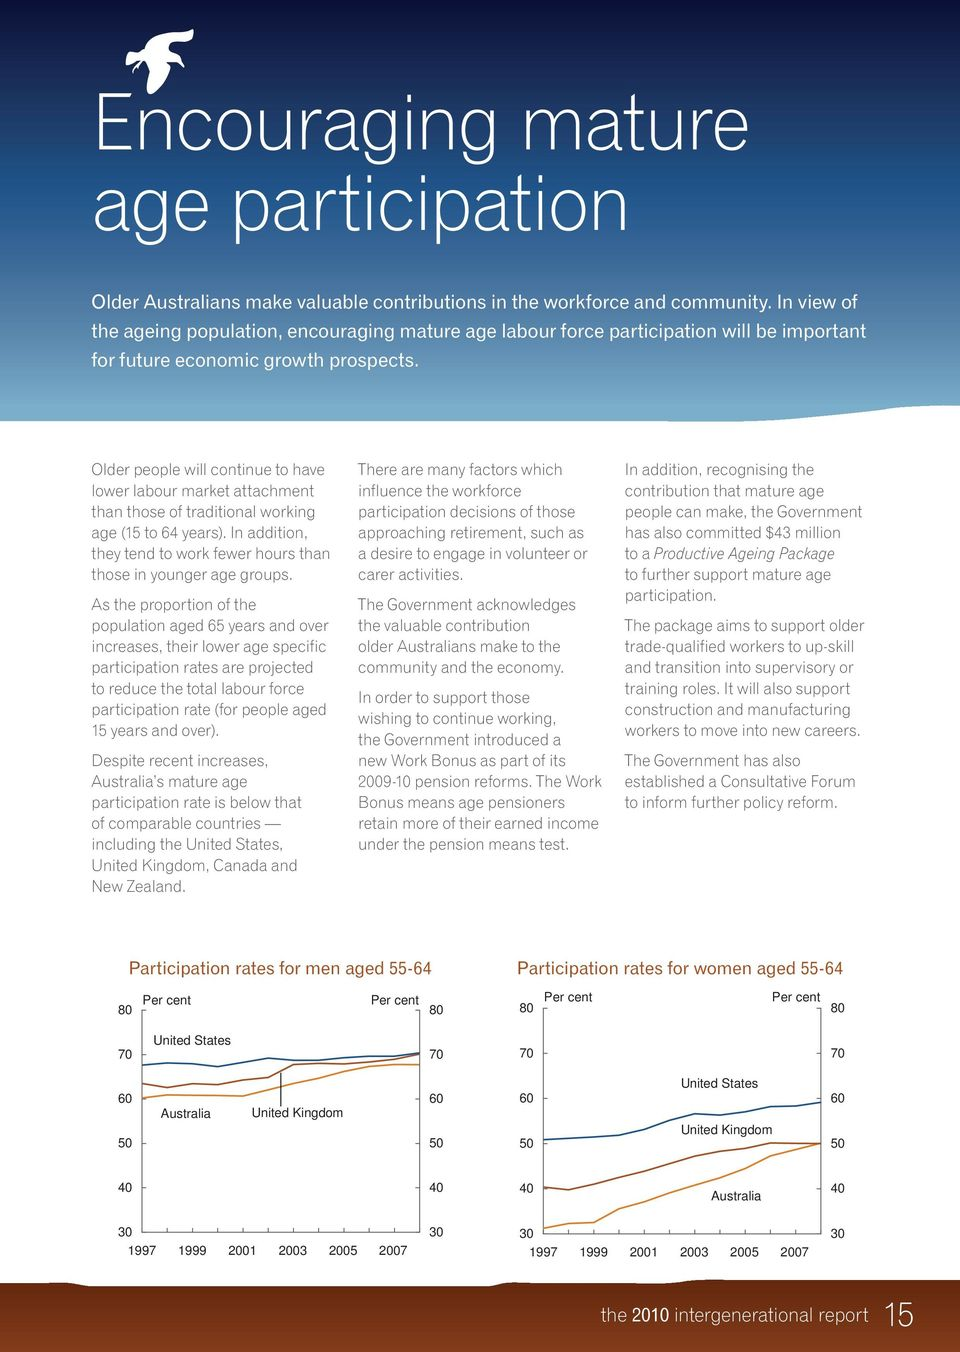 Older people will continue to have lower labour market attachment than those of traditional working age (5 to 6 years). In addition, they tend to work fewer hours than those in younger age groups.